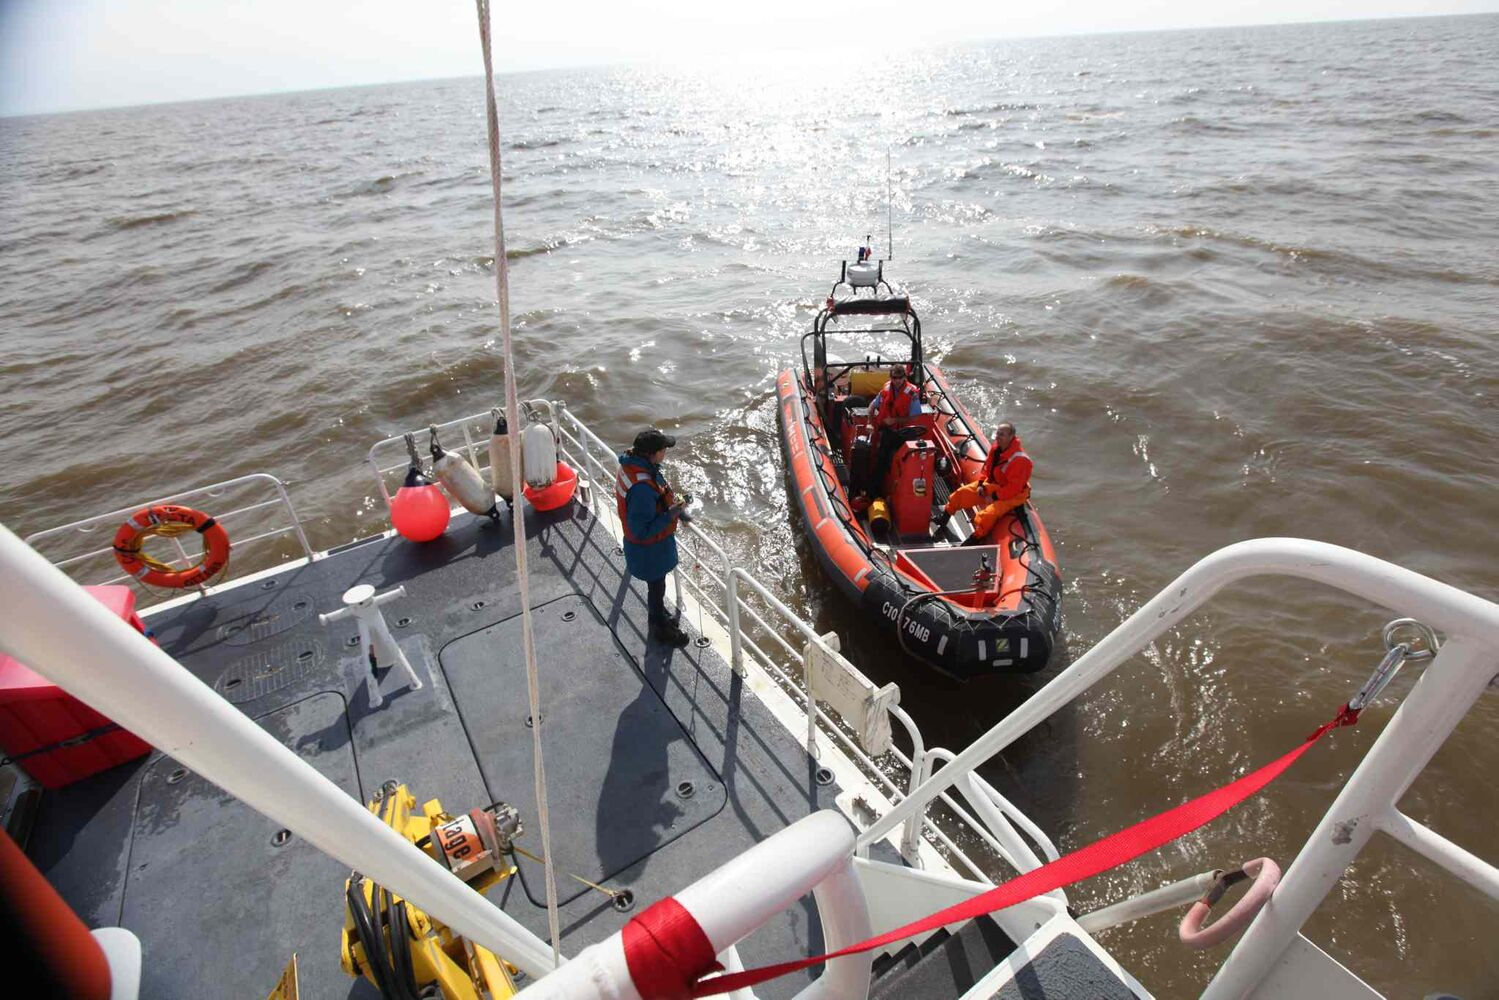 Rescue vessels position themselves alongside each other.